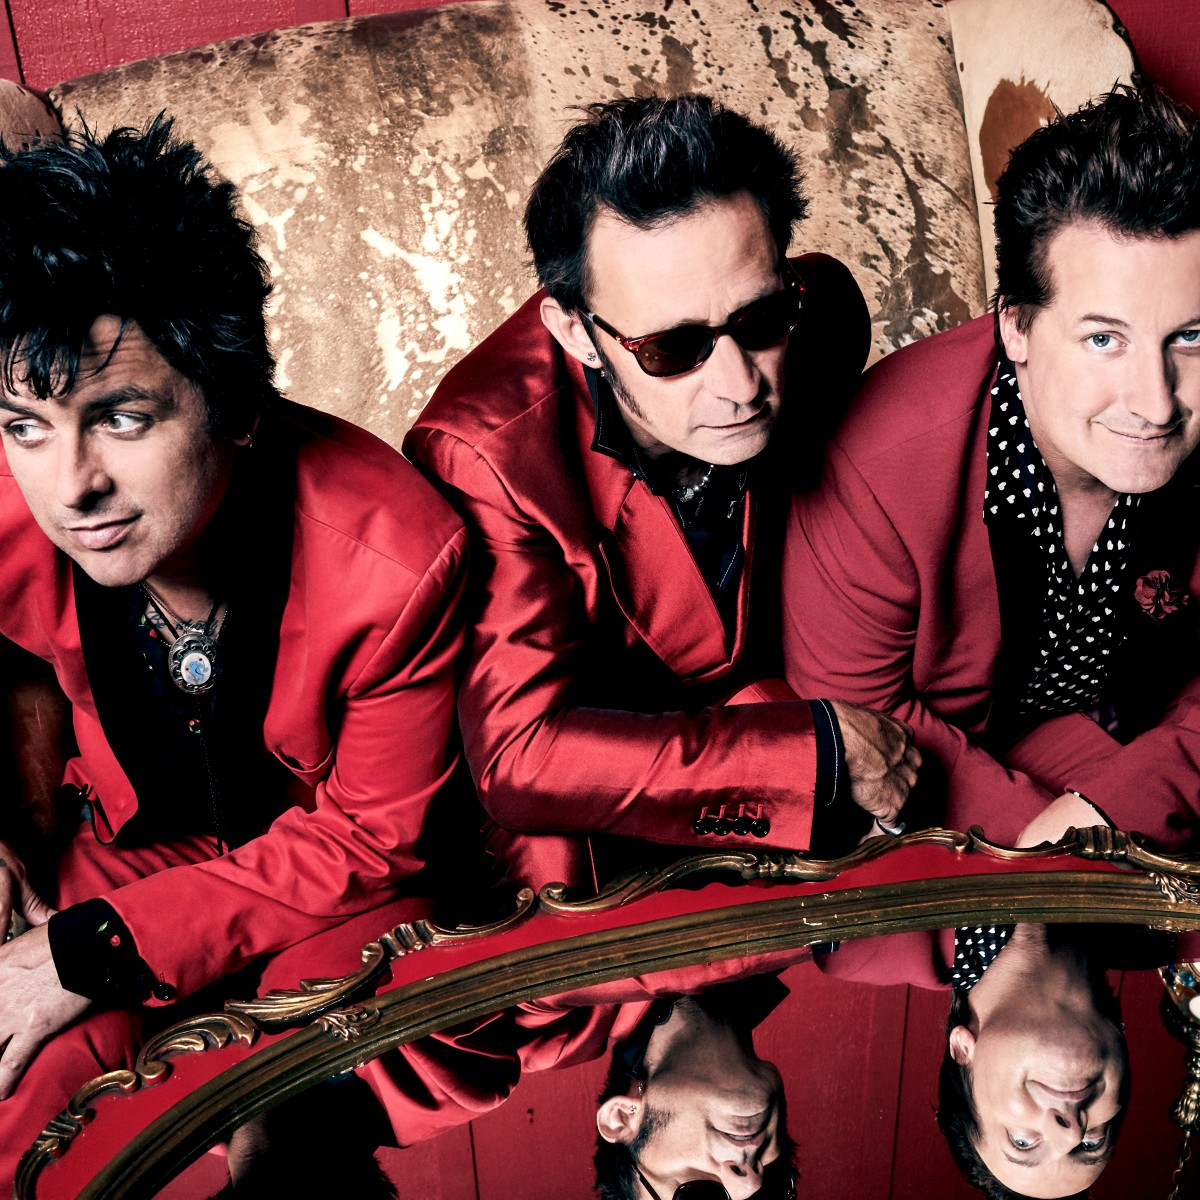 """Green Day Announce New Single """"Father Of All…,"""" From Forthcoming Album + Global Stadium Tour In 2020"""